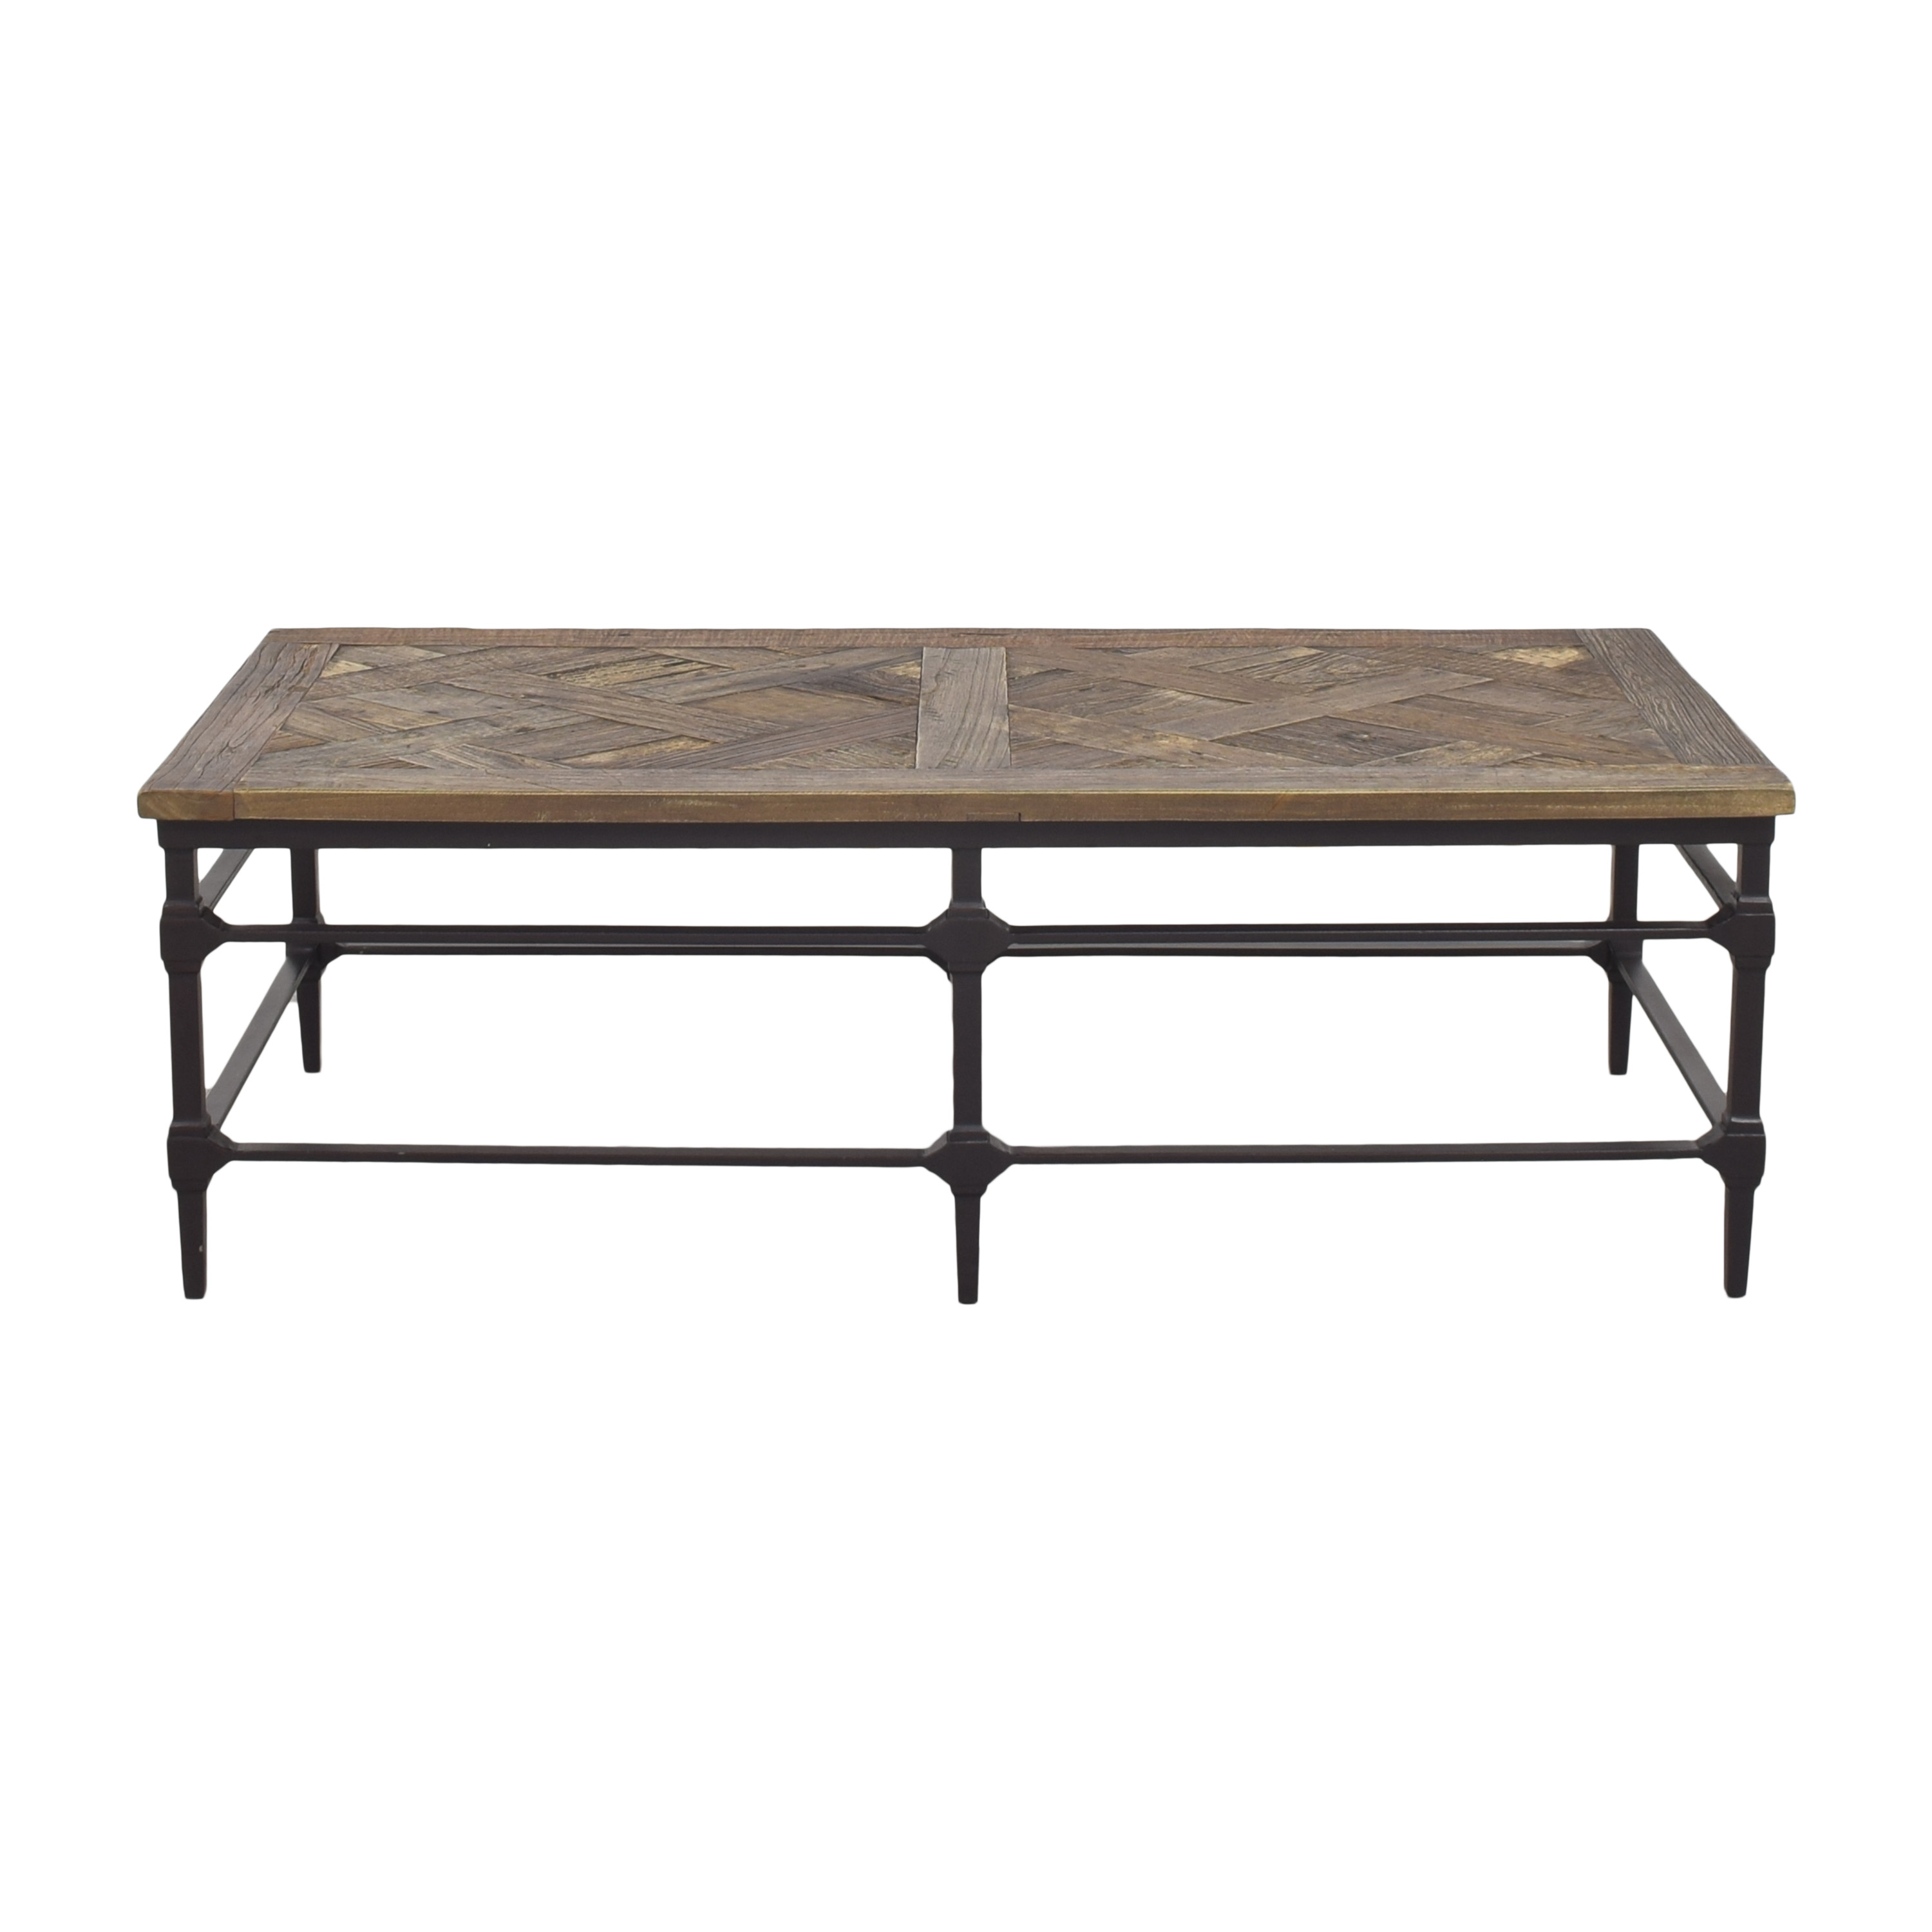 shop Pottery Barn Pottery Barn Parquet Reclaimed Rectangular Coffee Table online